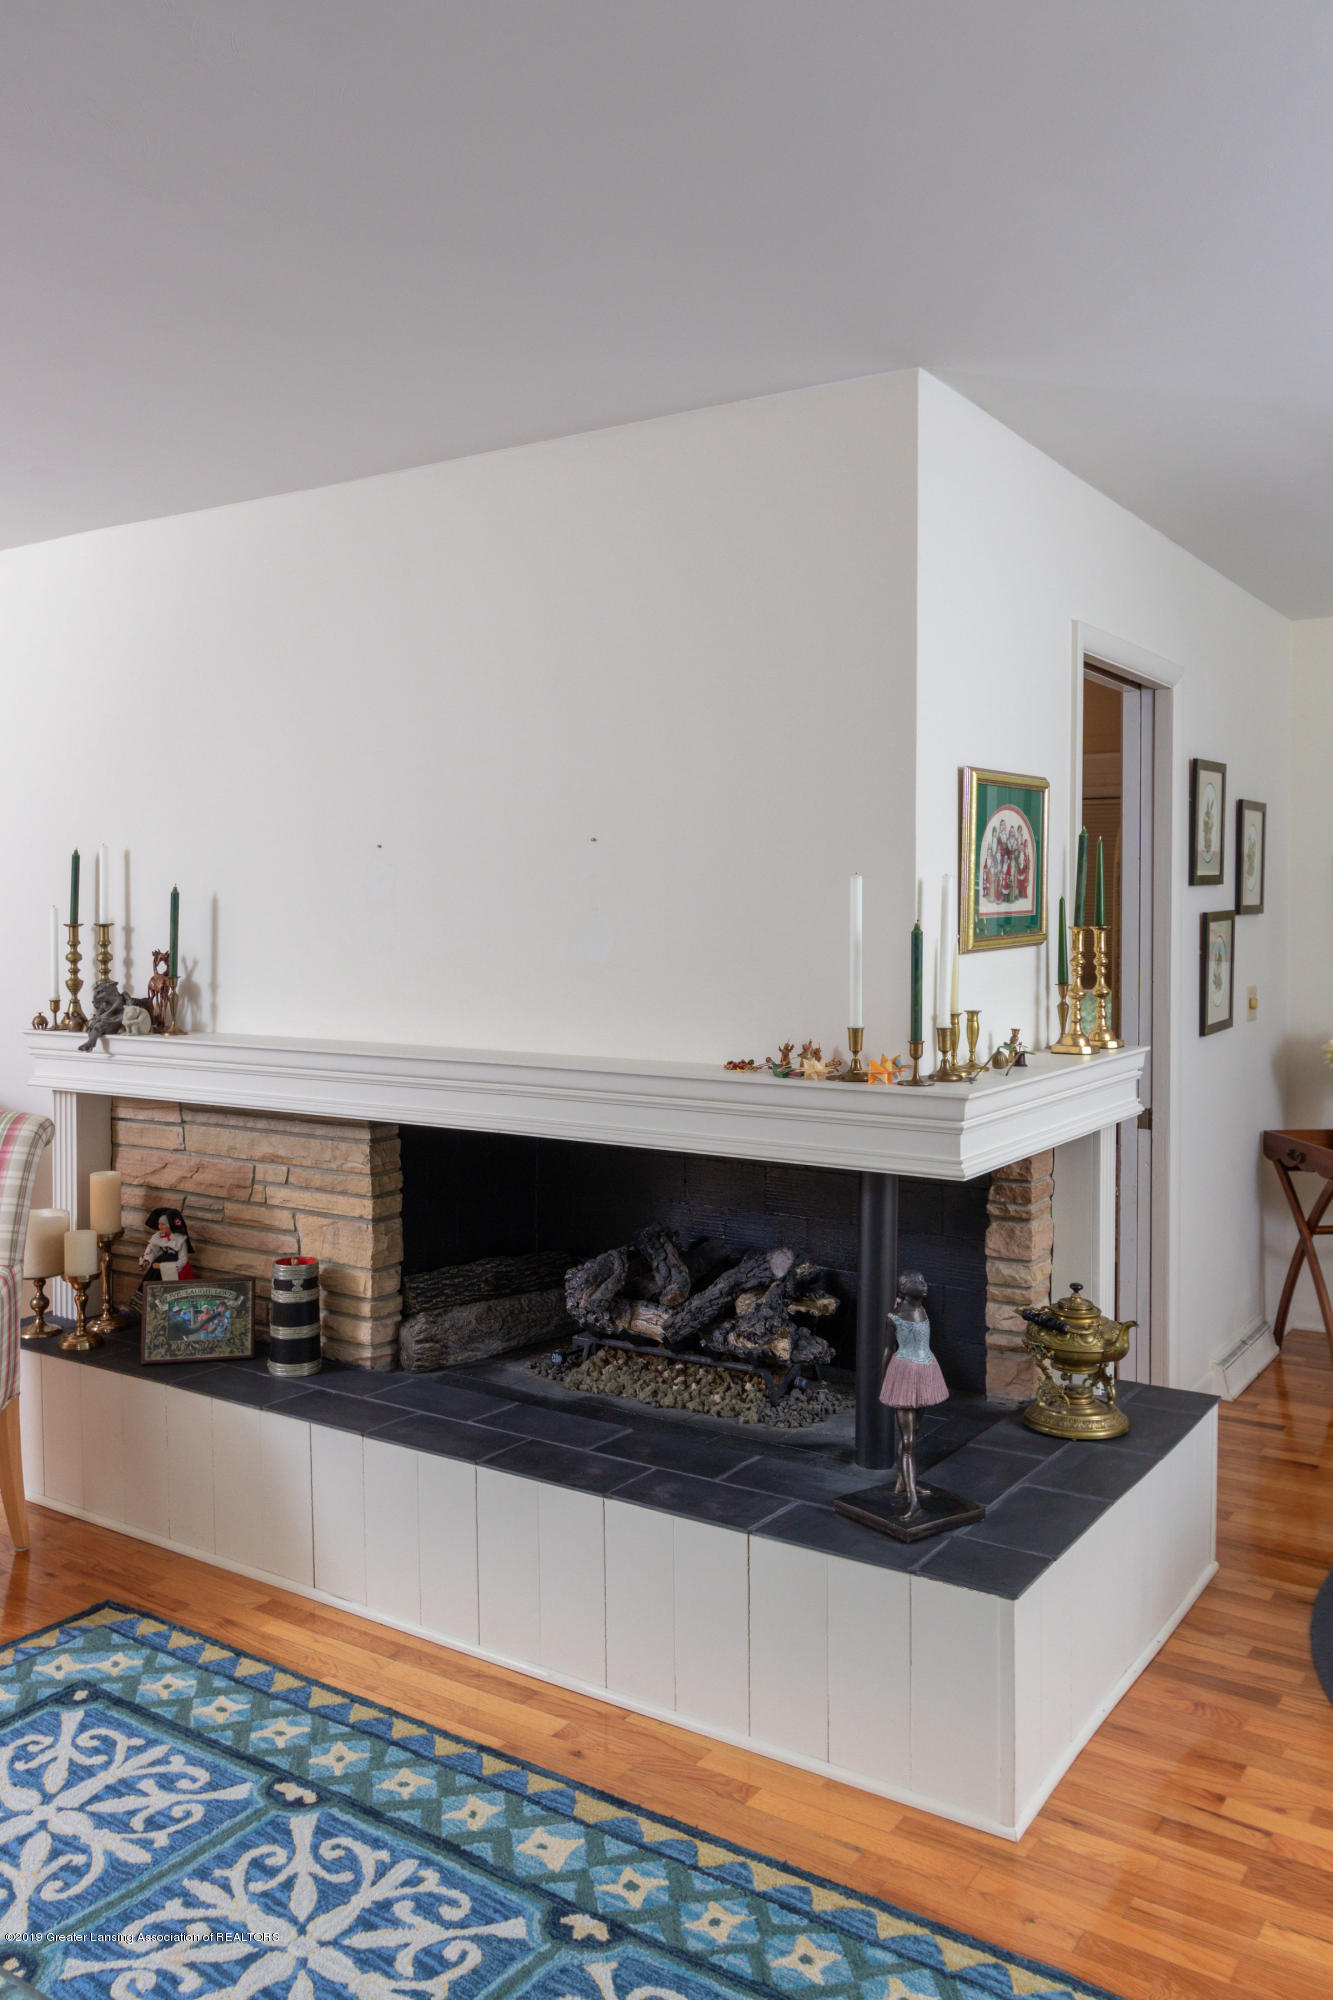 2117 Tomahawk Rd - Living Room Fireplace - 10